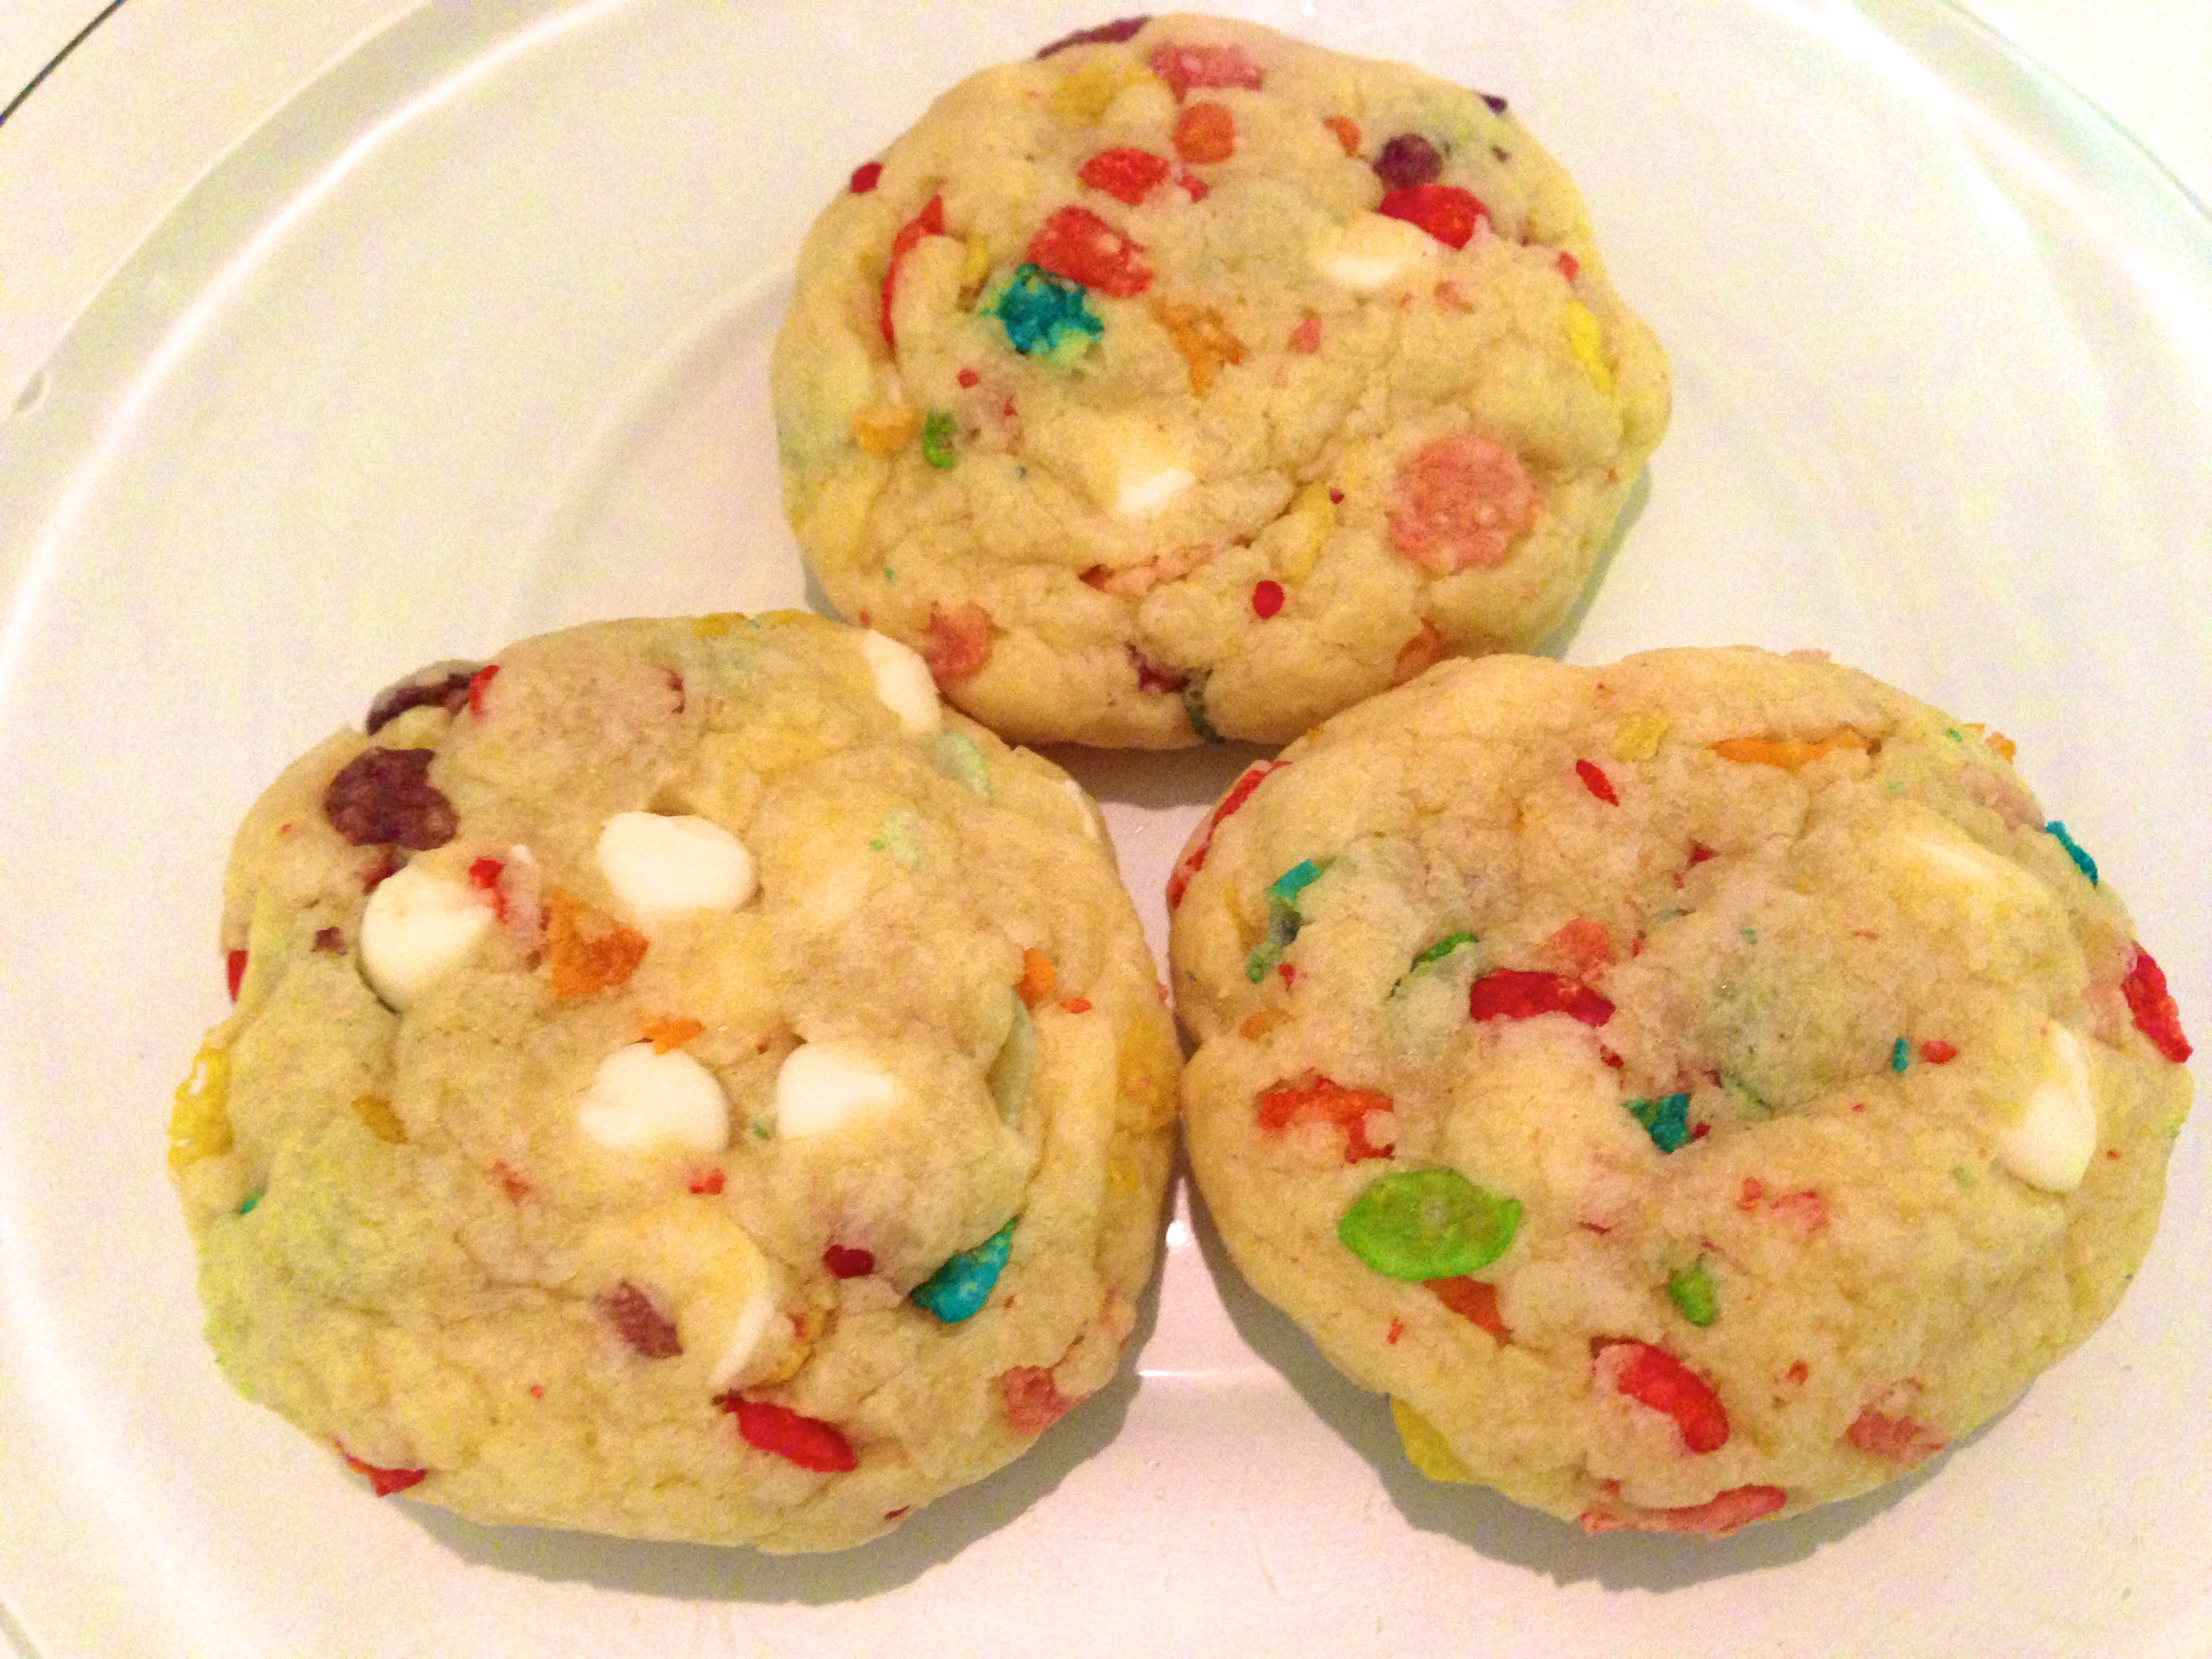 ... : http://www.crazyforcrust.com/2012/10/fruity-pebble-pudding-cookies